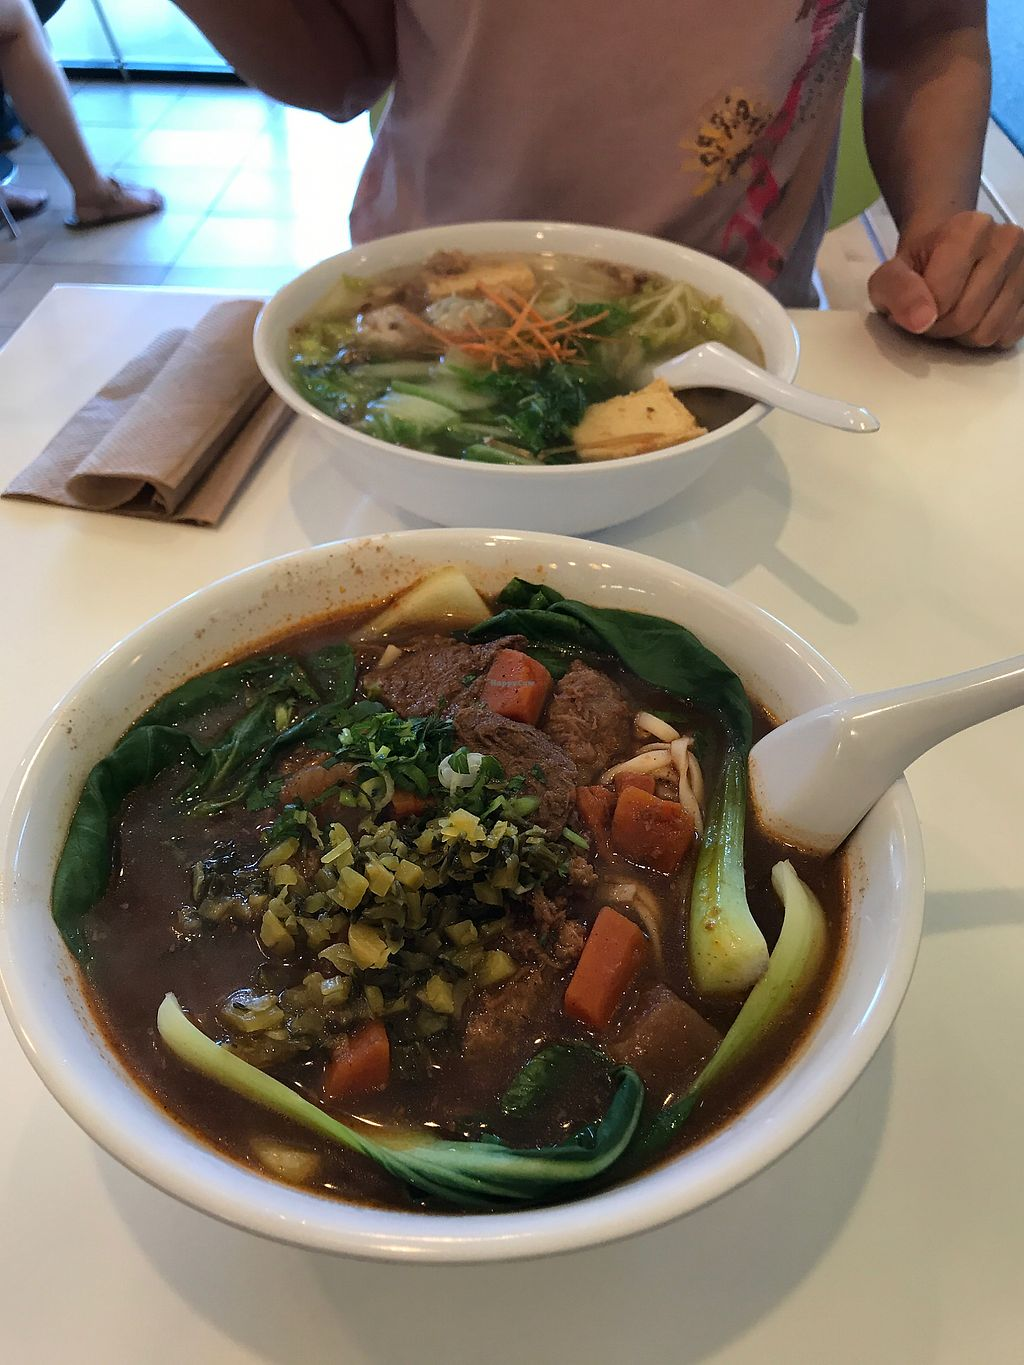 """Photo of Happiness Cafe  by <a href=""""/members/profile/AllenJeng"""">AllenJeng</a> <br/>noodle soup <br/> July 22, 2017  - <a href='/contact/abuse/image/33481/283366'>Report</a>"""